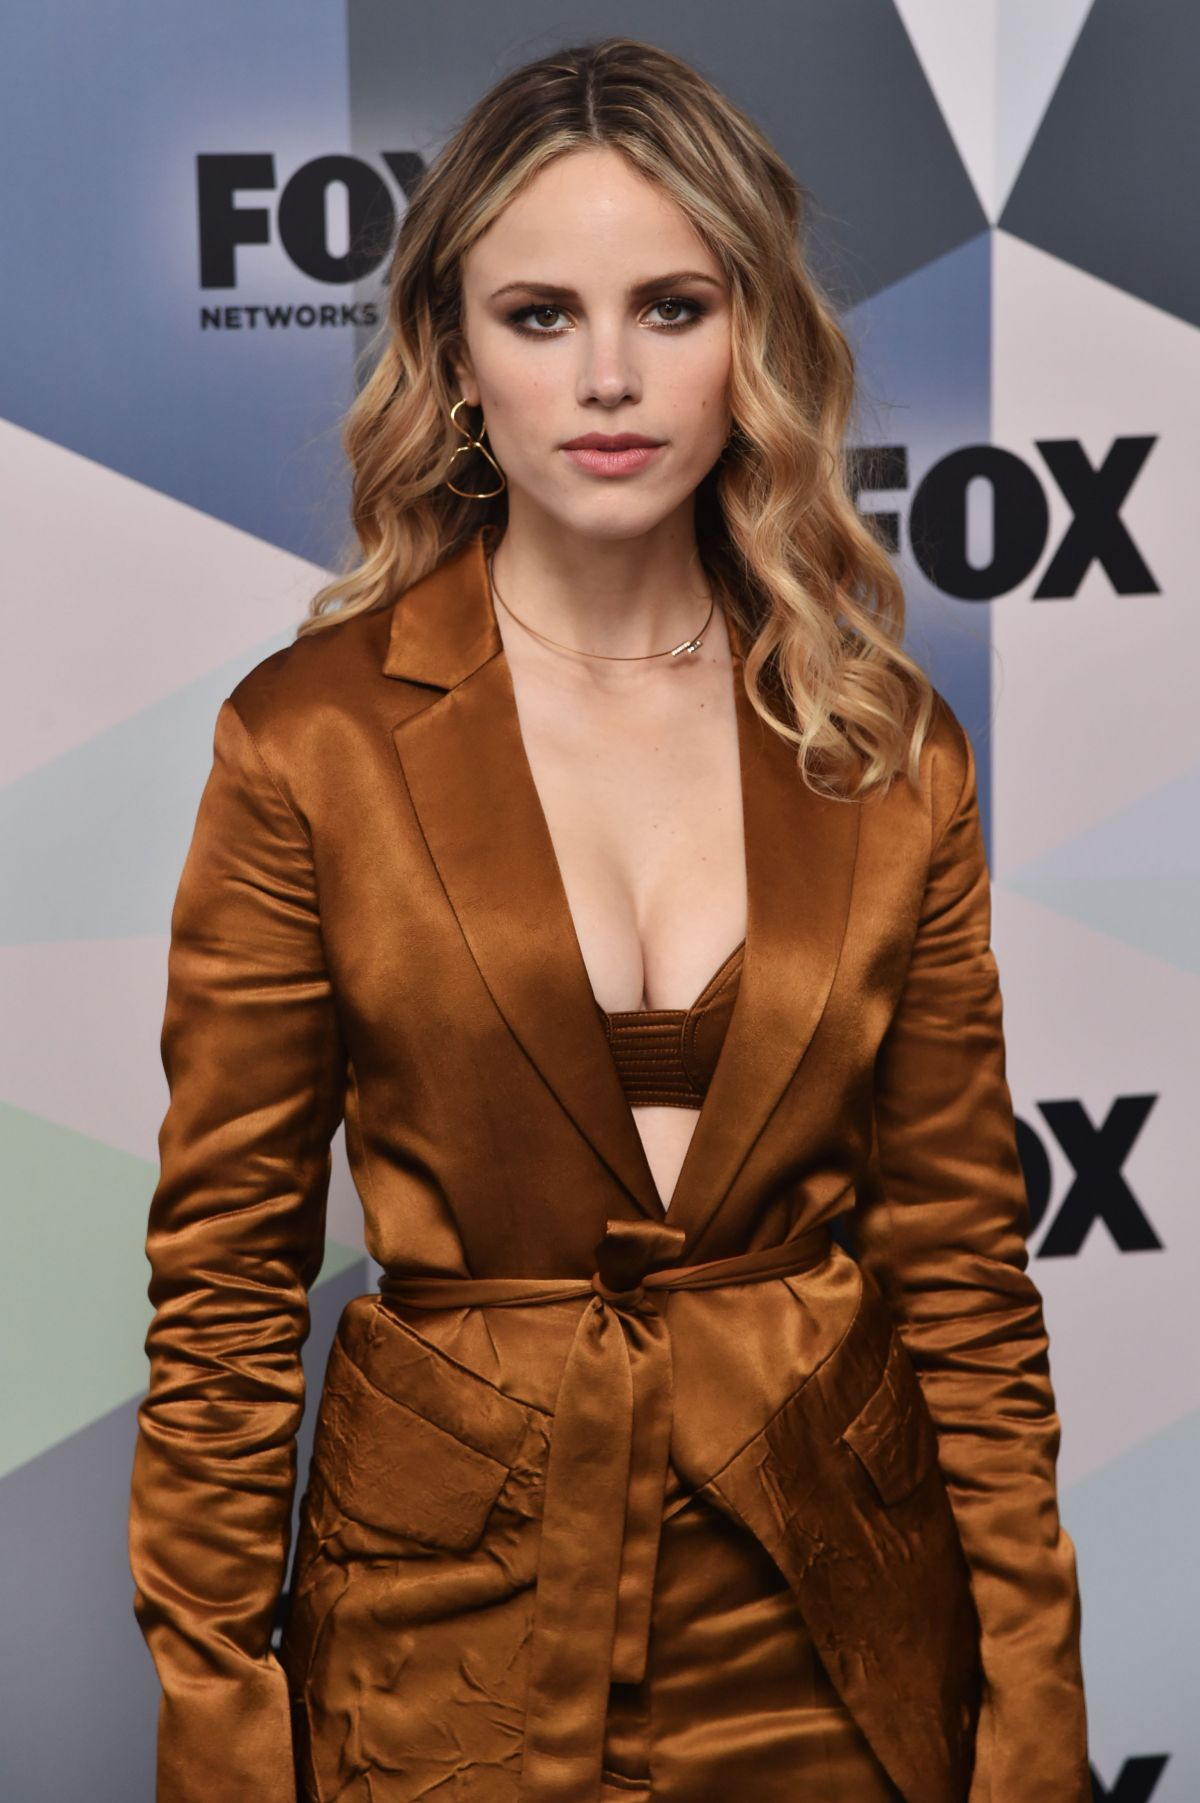 Halston Sage Nude Photos 71